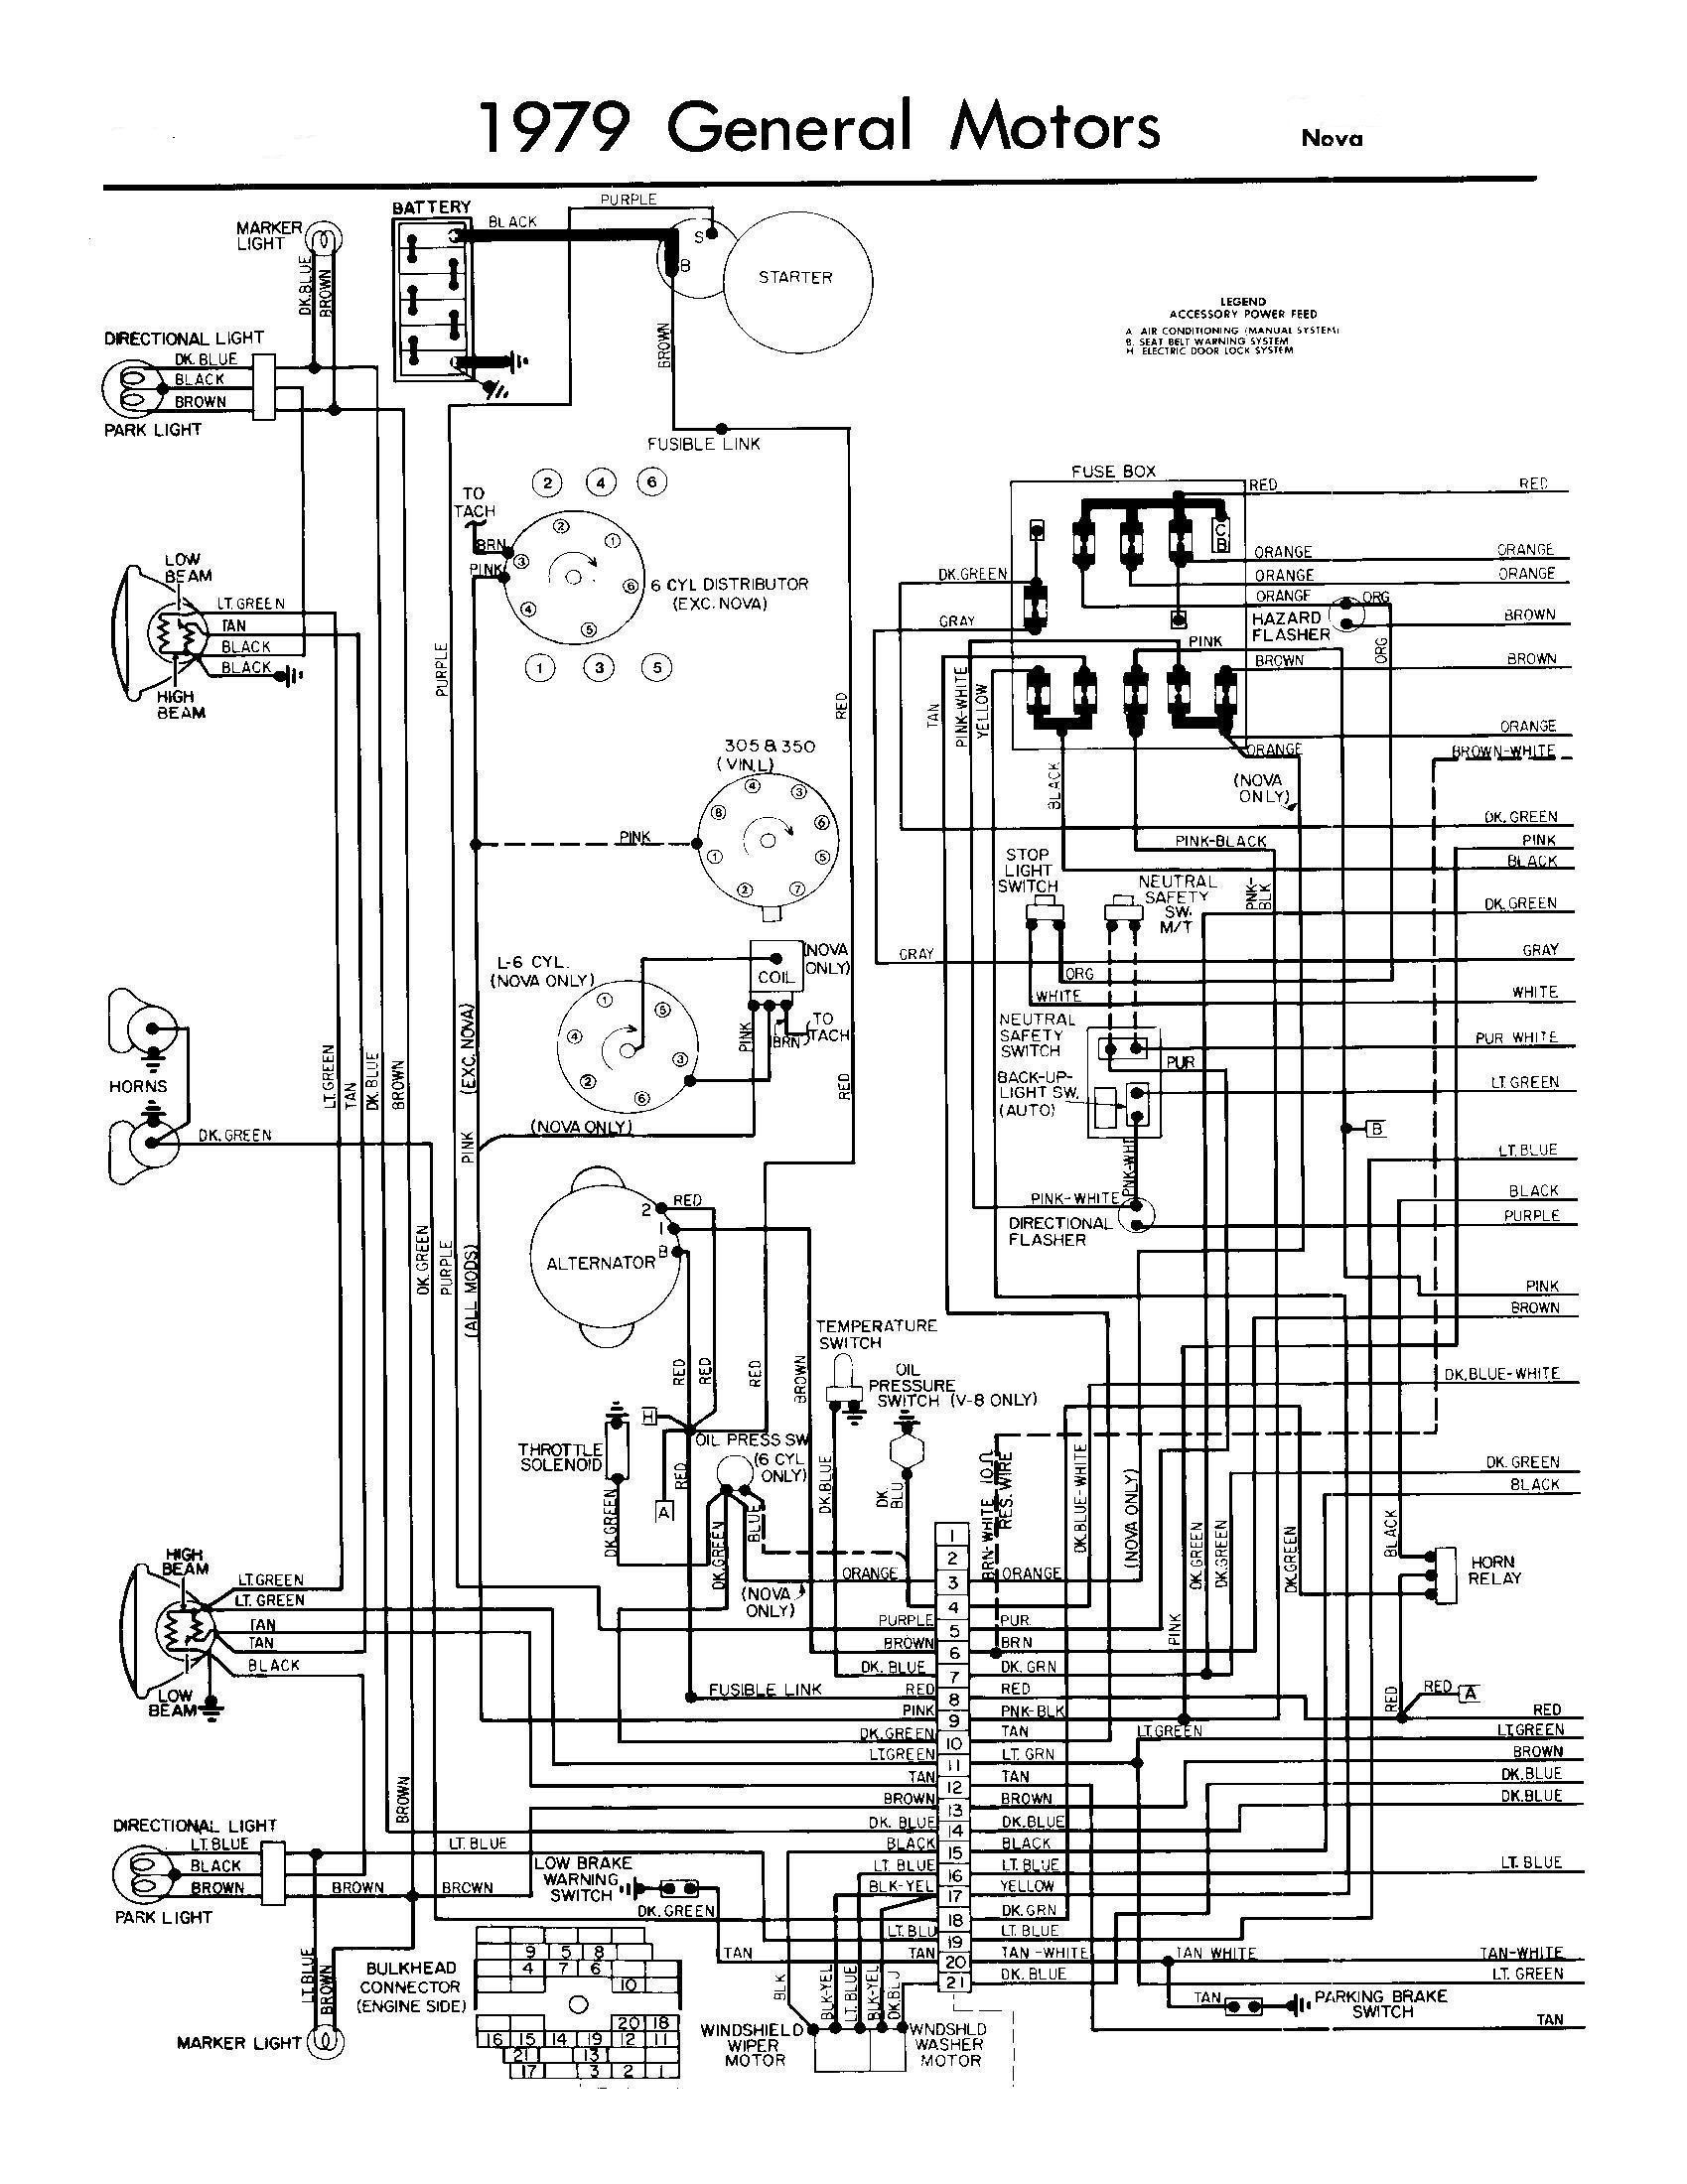 1996 chevy monte carlo wiring diagram wiring diagrams1996 monte carlo wiring diagram carbonvote mudit blog \\u2022 2002 chevy monte carlo problems 1996 chevy monte carlo wiring diagram